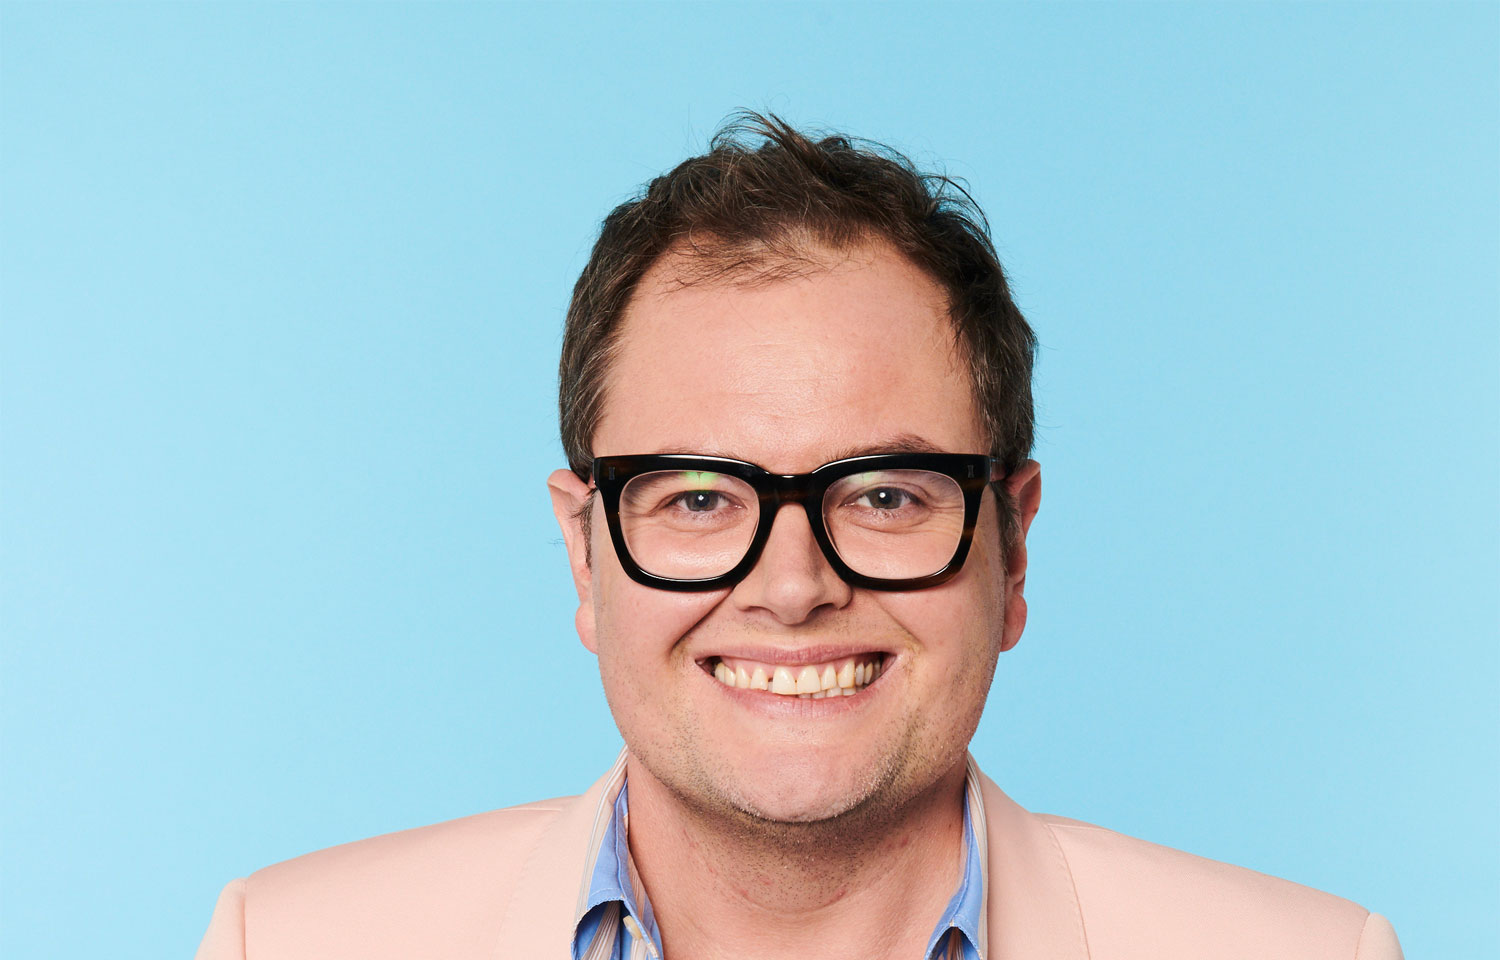 SEARCH BEGINS TO FIND A YOUNG ALAN CARR FOR HIS NEW SITCOM